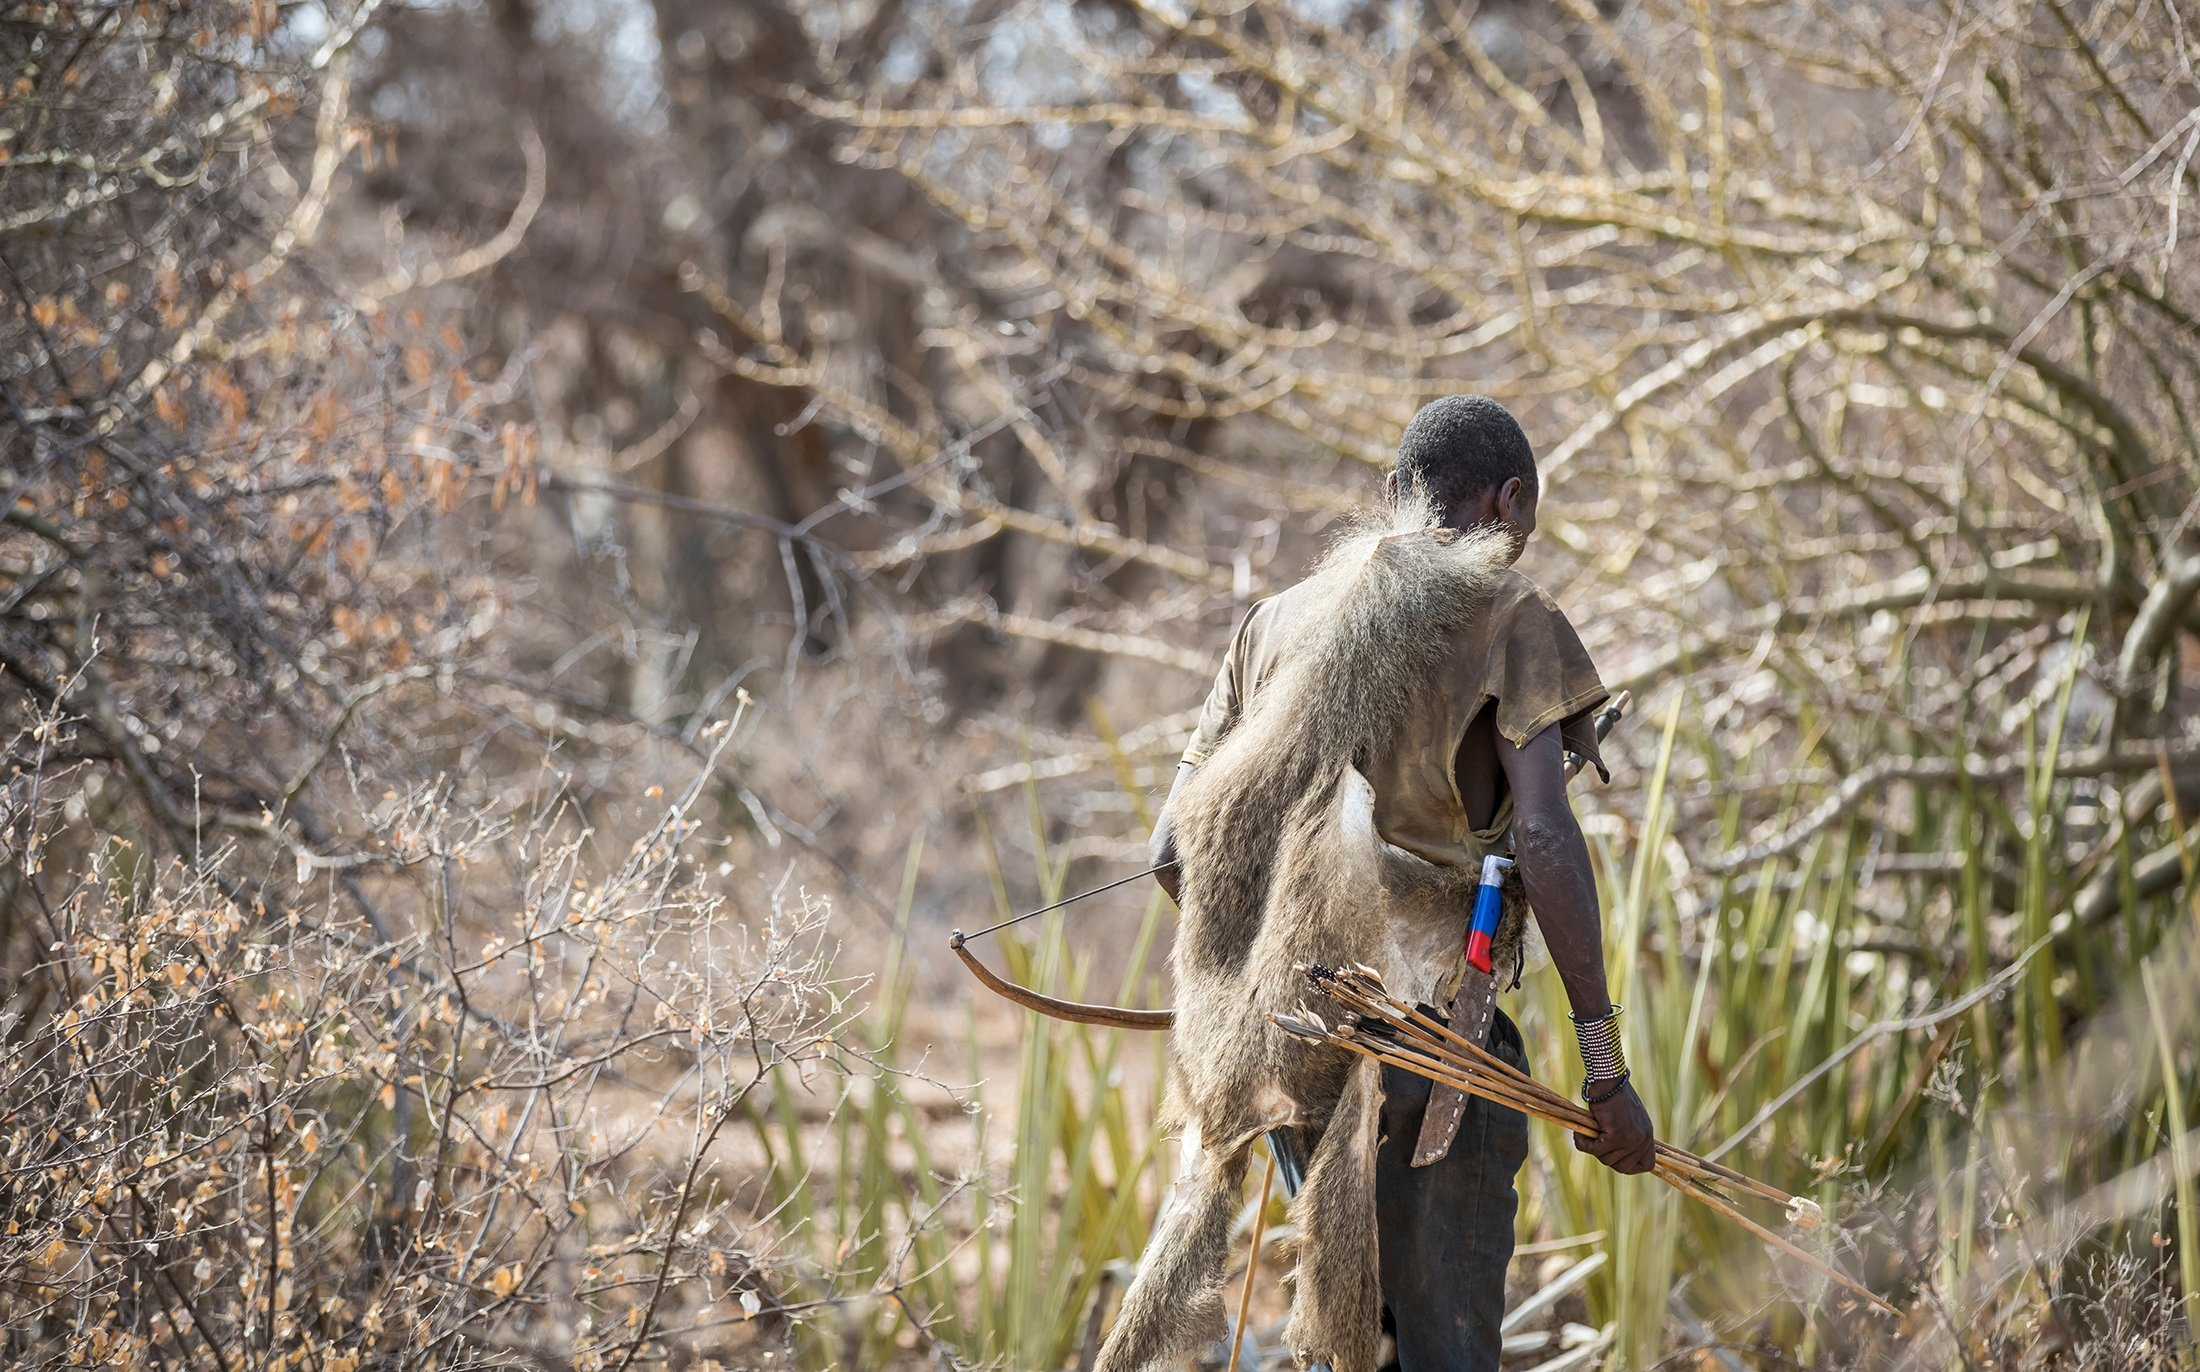 A Hadza hunter carries bow and arrows in northern Tanzania. (Shutterstock Photo)